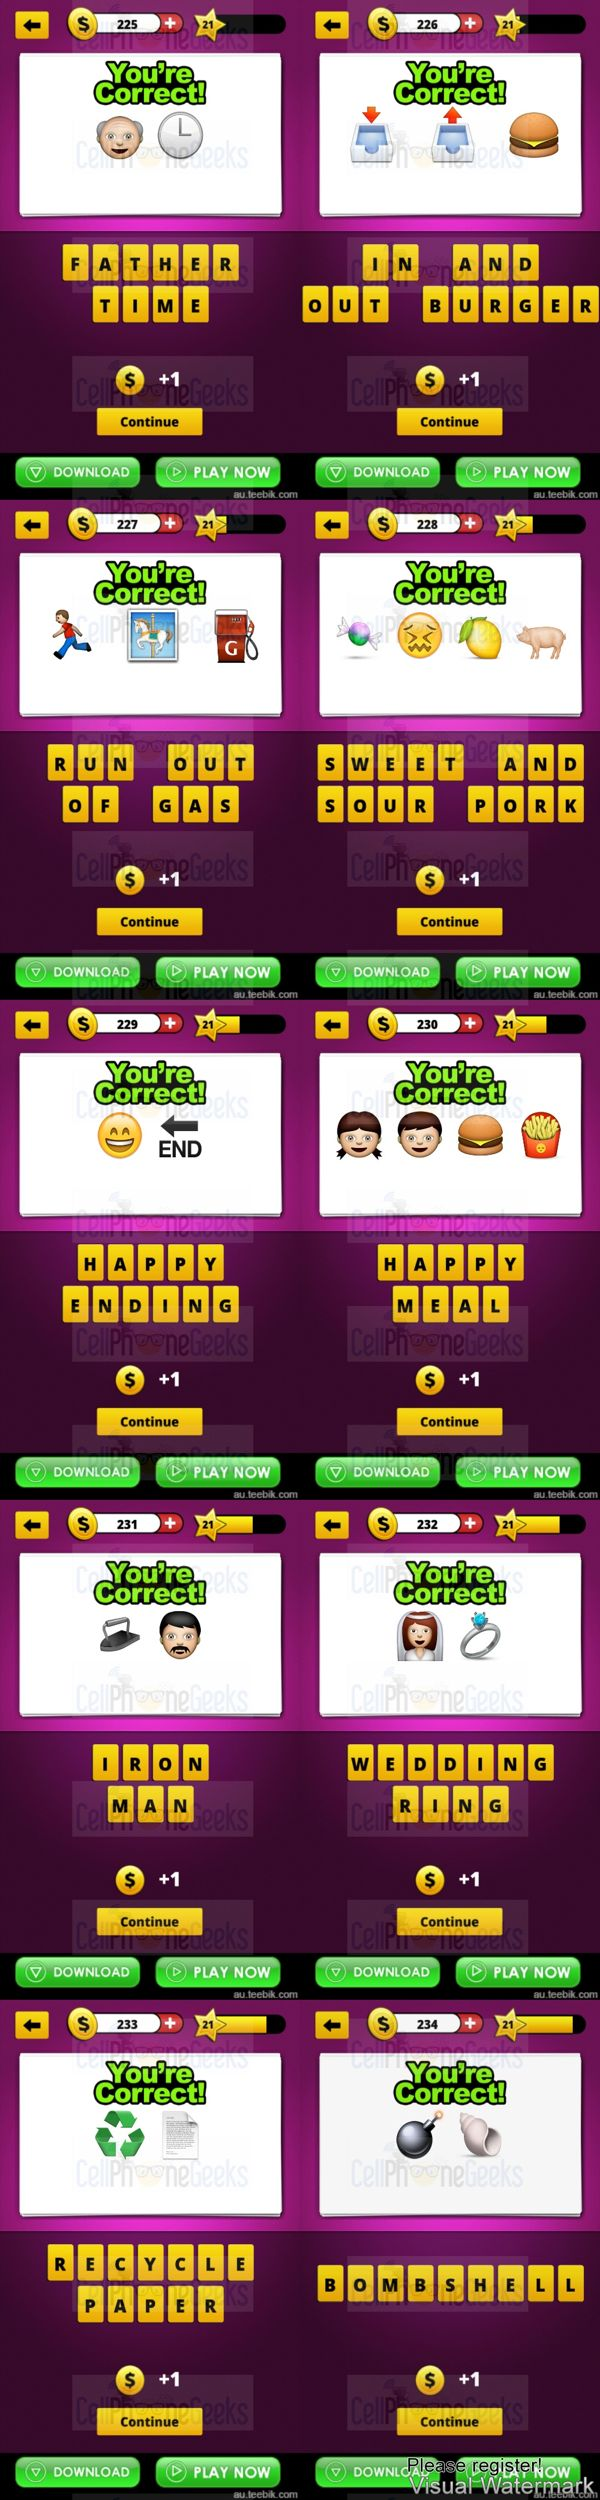 Guess The Emoji Level 21 Answers Cellphonegeeks Guess The Emoji Answers Guess The Emoji Emoji Answers